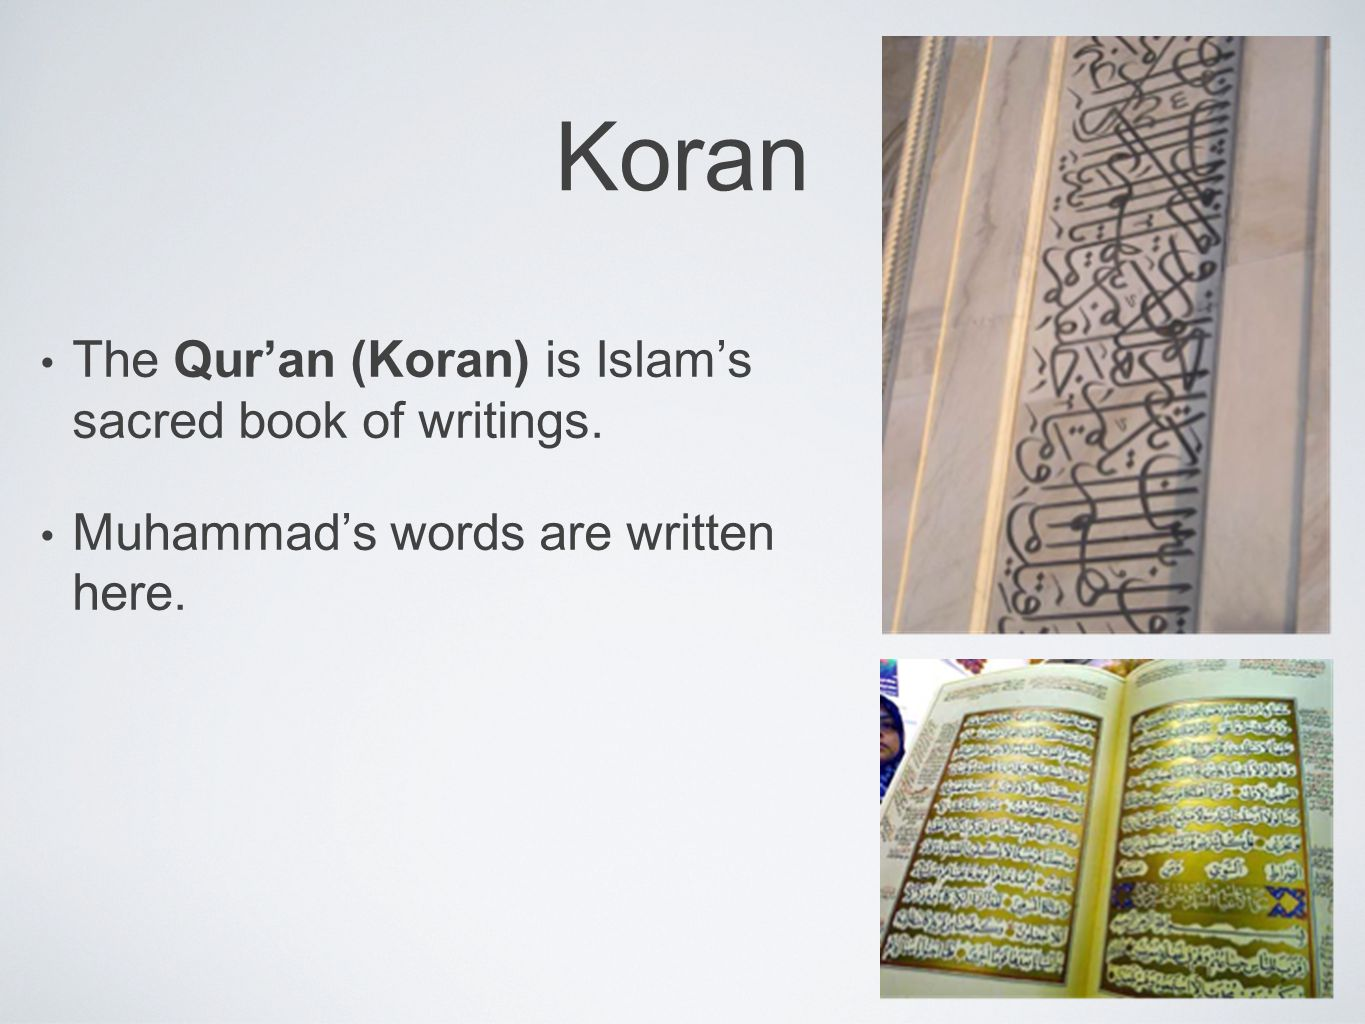 Koran The Qur'an (Koran) is Islam's sacred book of writings.